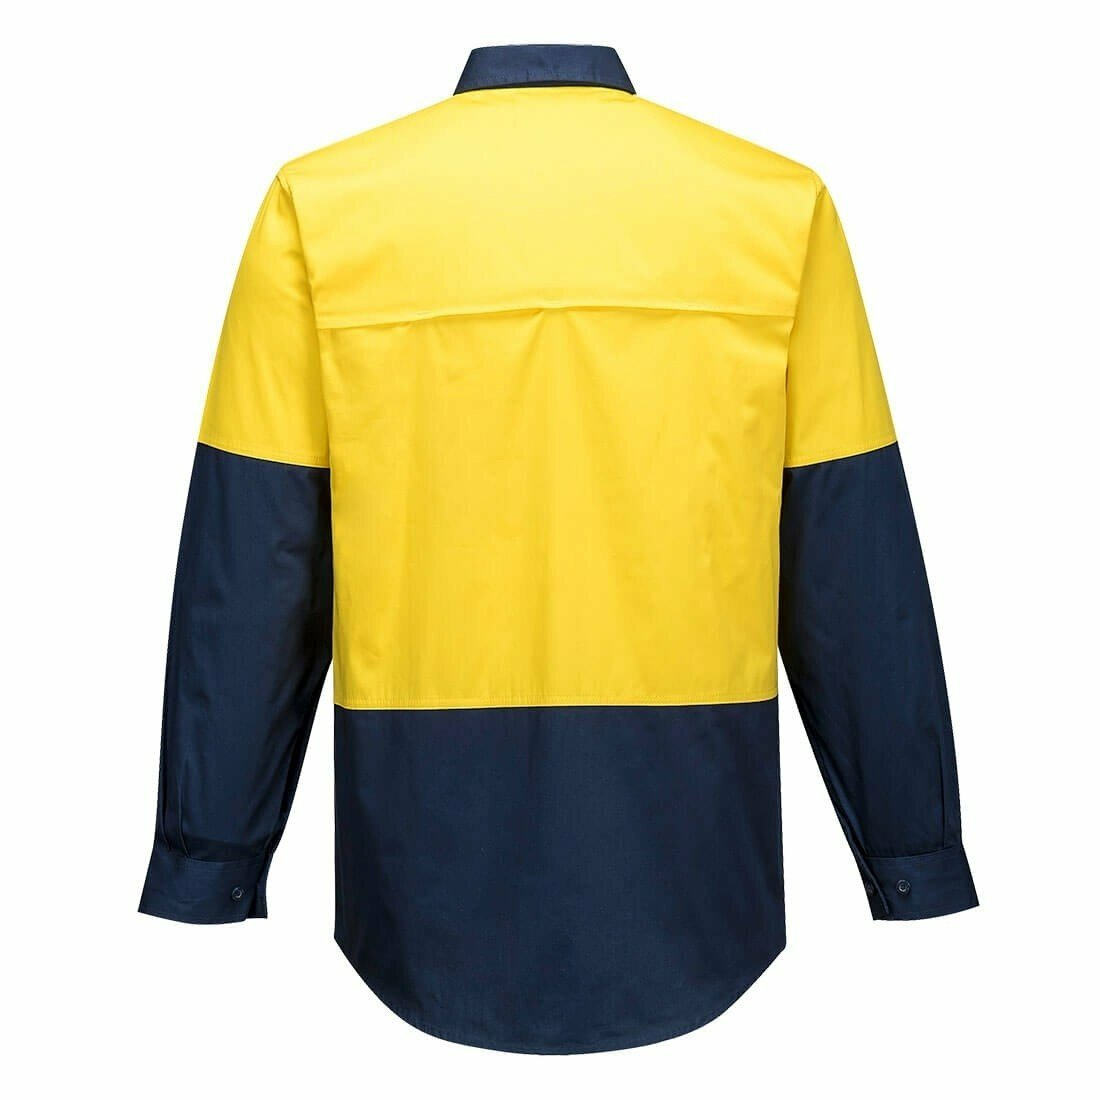 MS801 Hi-Vis Two Tone Lightweight Long Sleeve Shirt